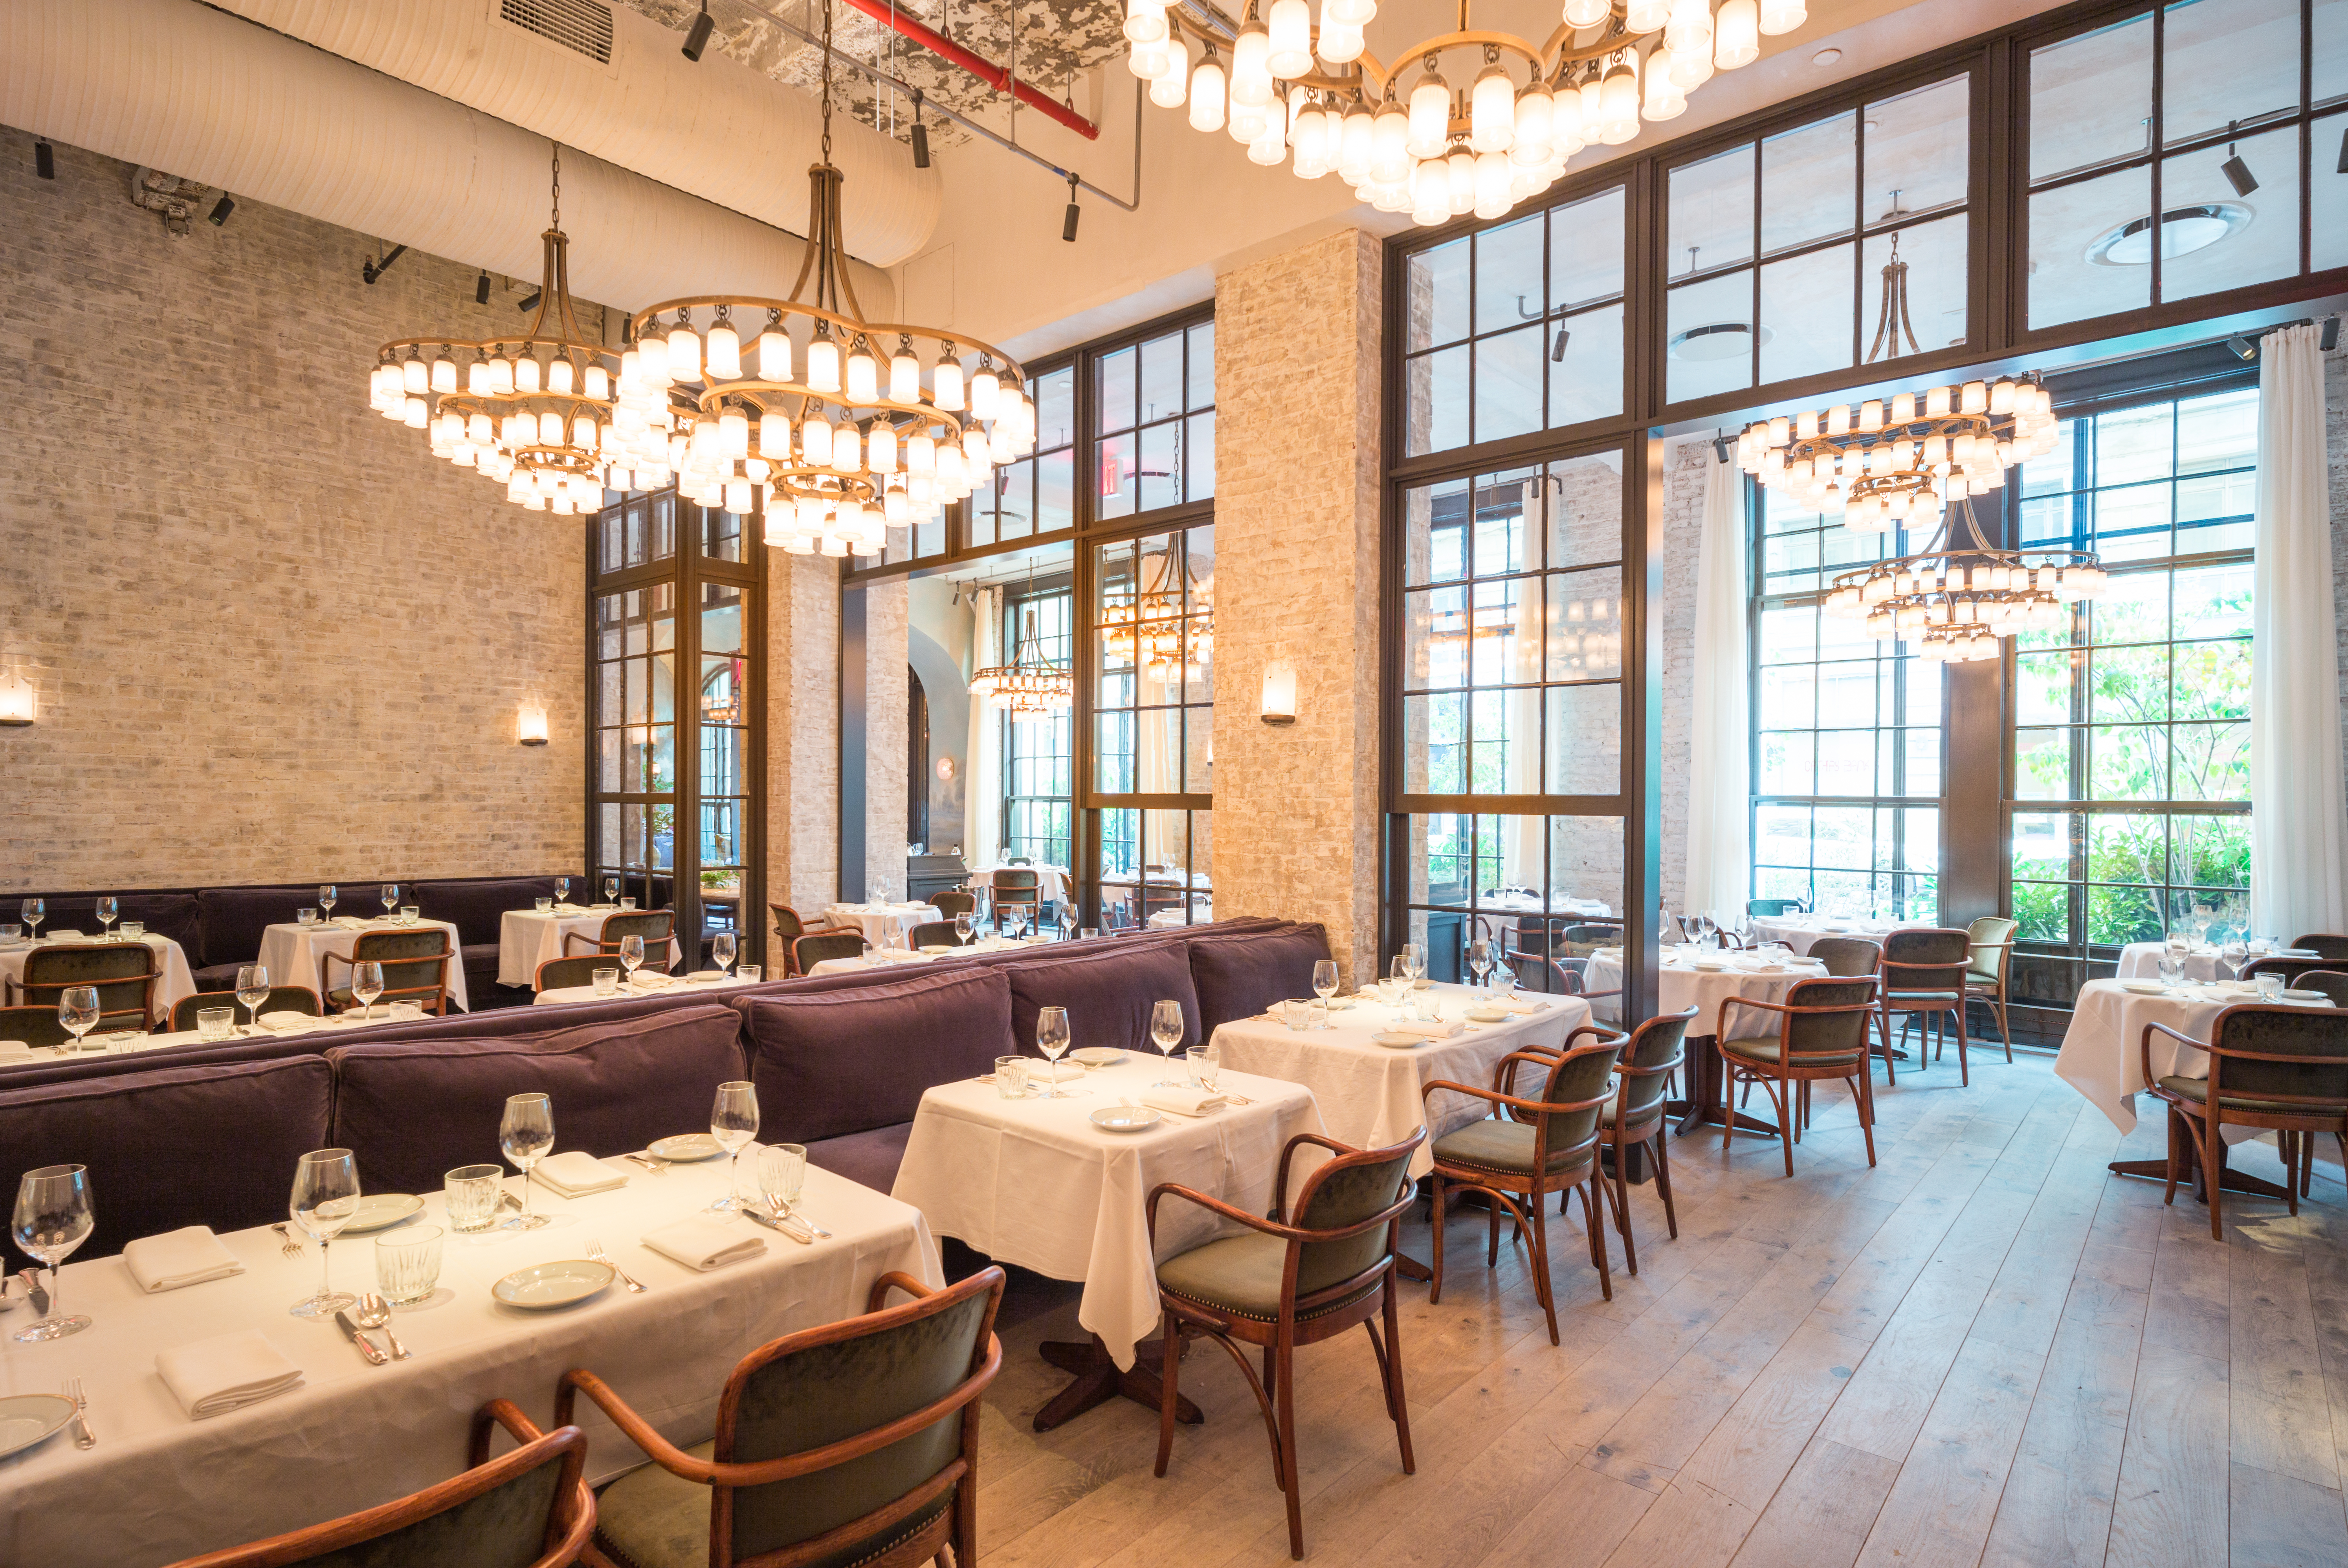 19 Places for a Stellar Meal in Soho - Eater NY